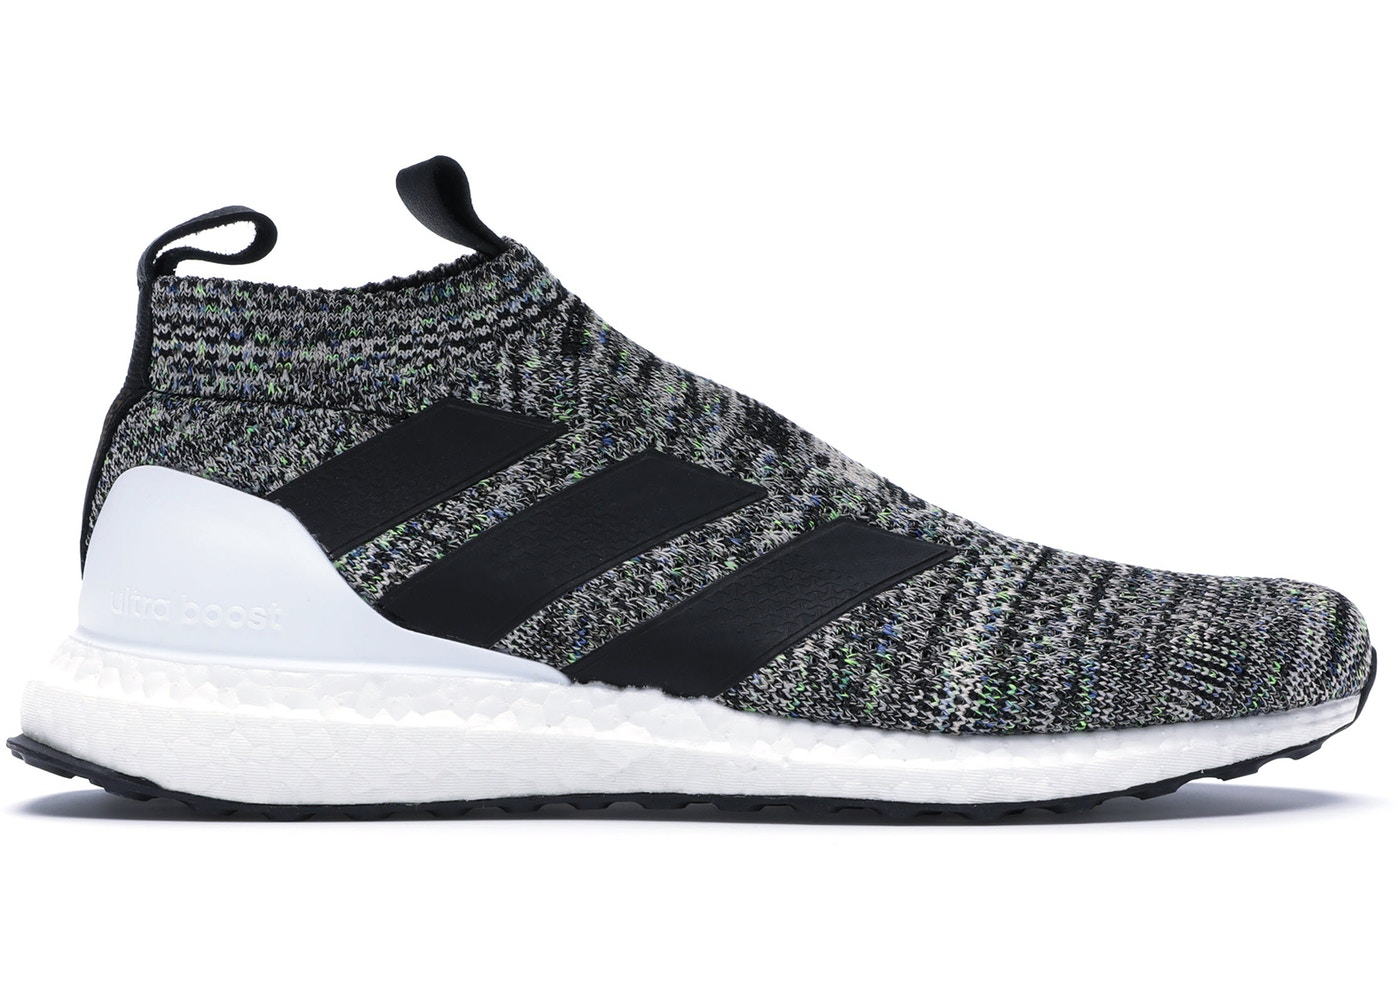 half off 2dc06 58849 adidas ACE 16+ Ultra Boost Oreo - AC7749